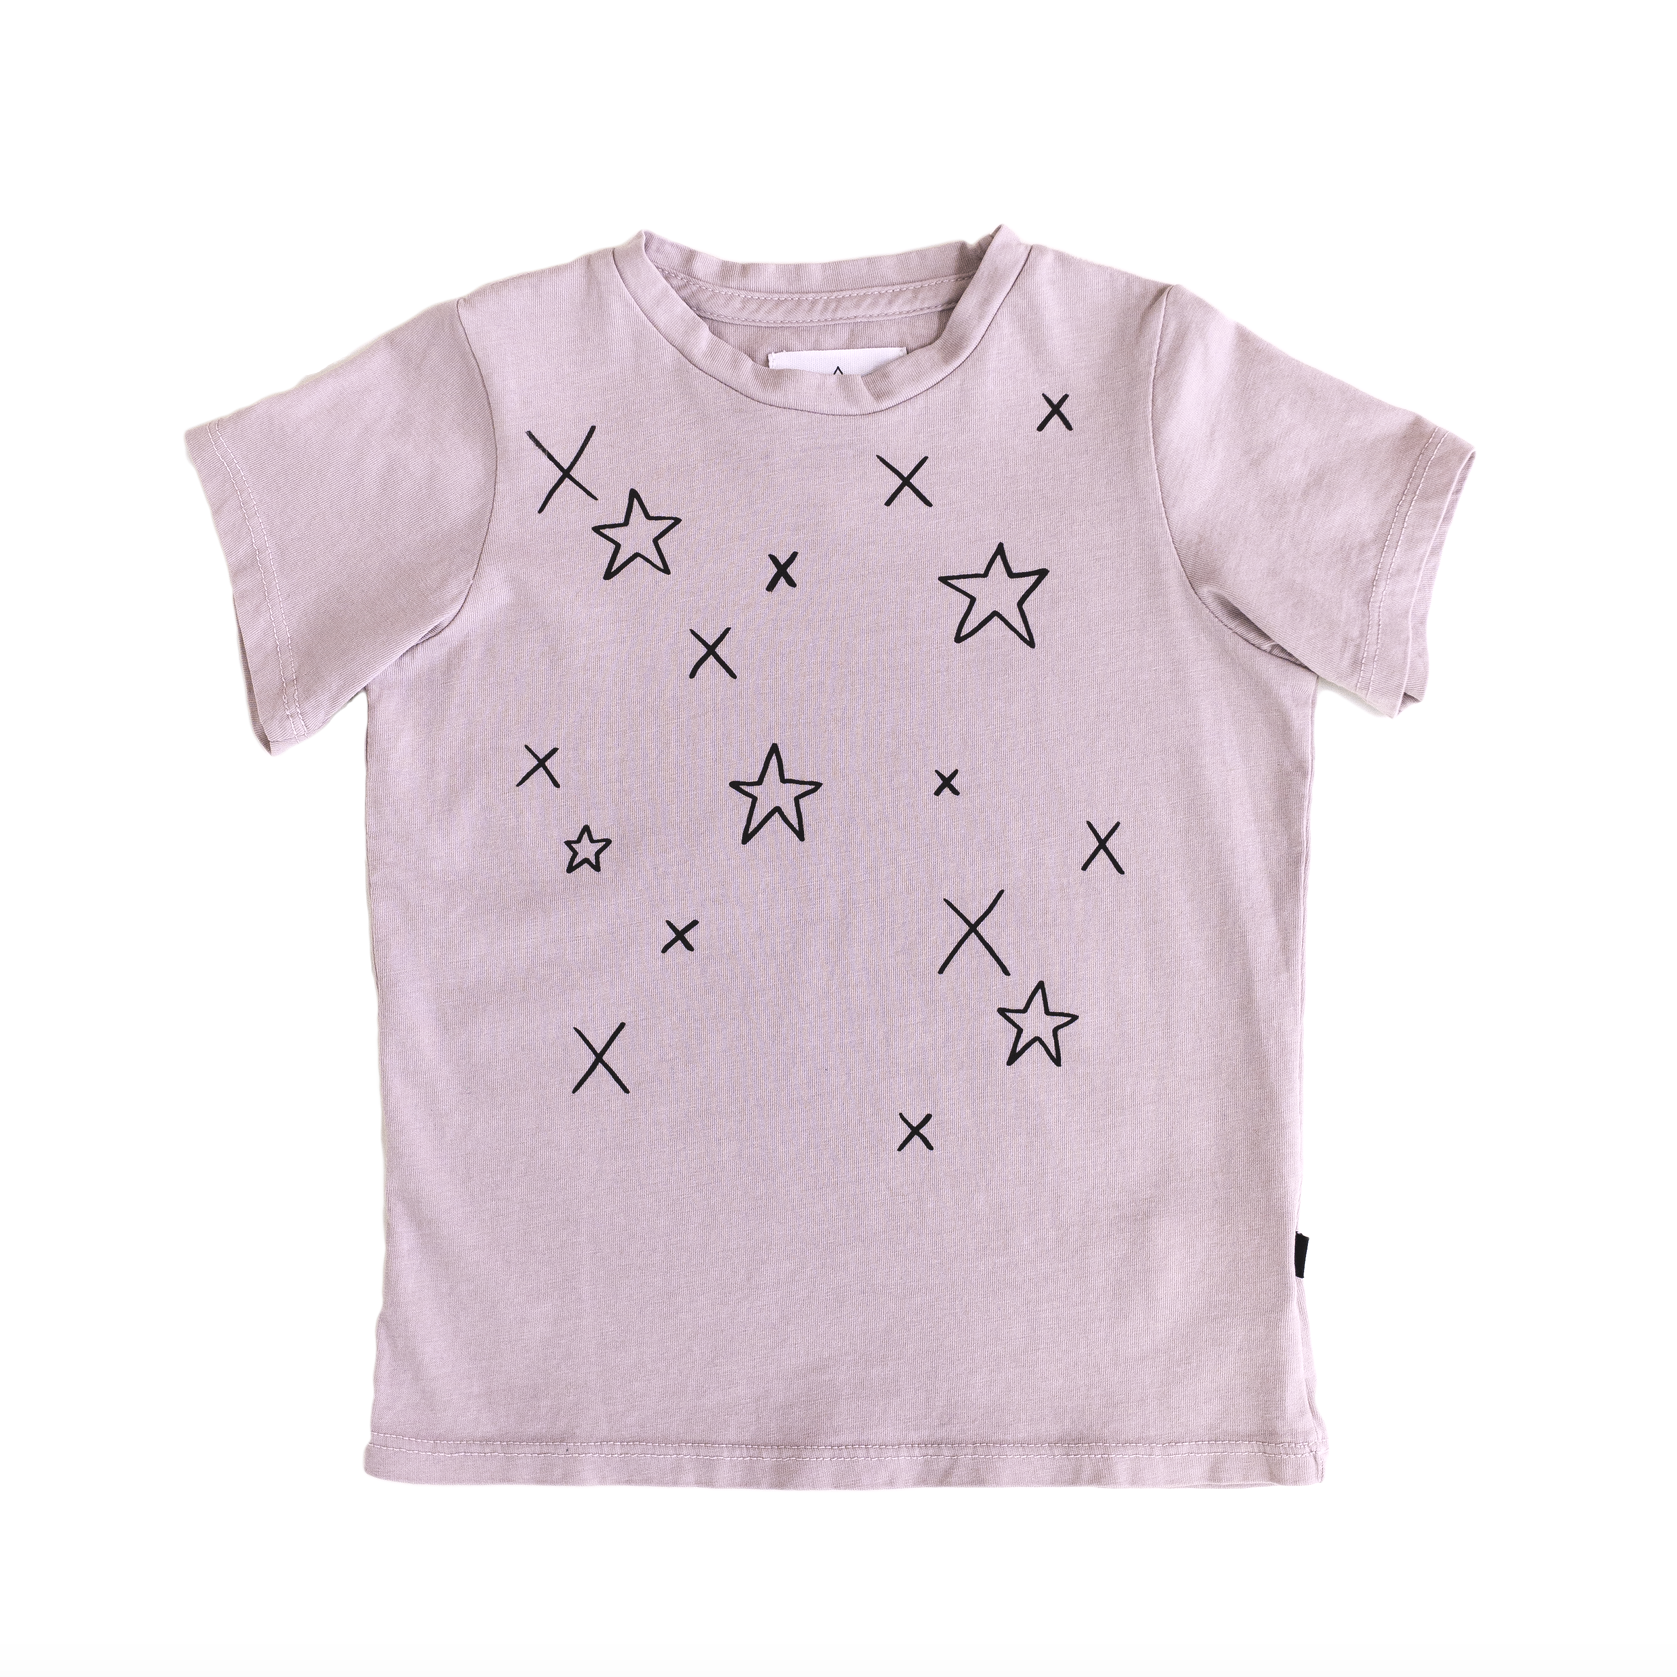 STAR X Short Sleeve Tee